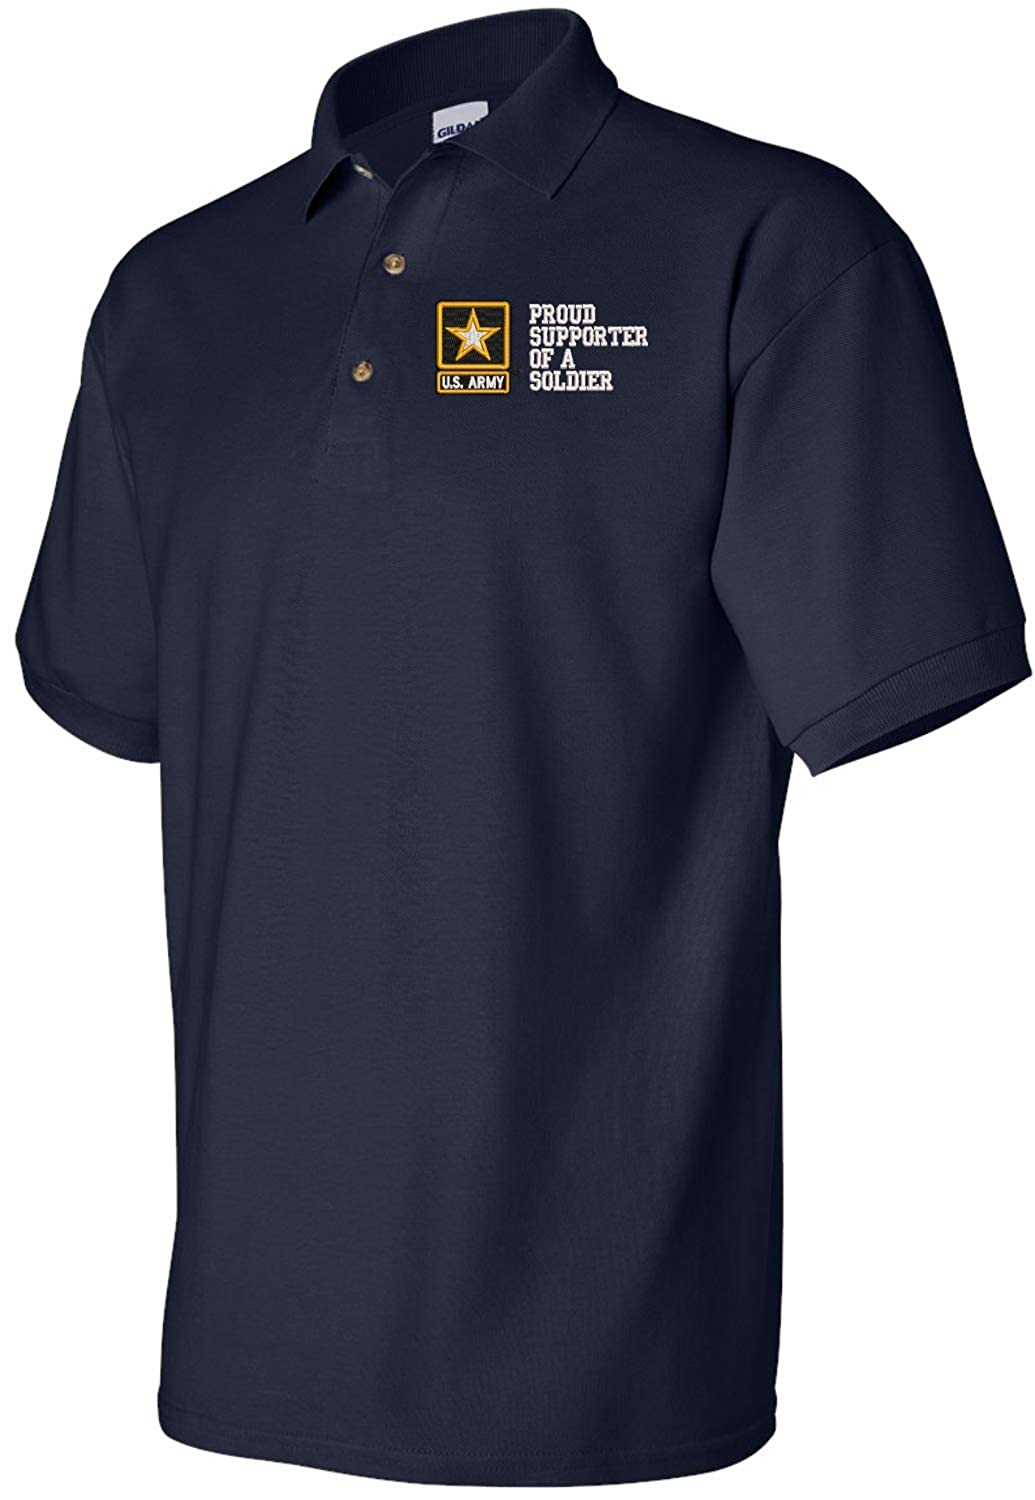 Army Polo Proud Supporter of a Soldier U.S